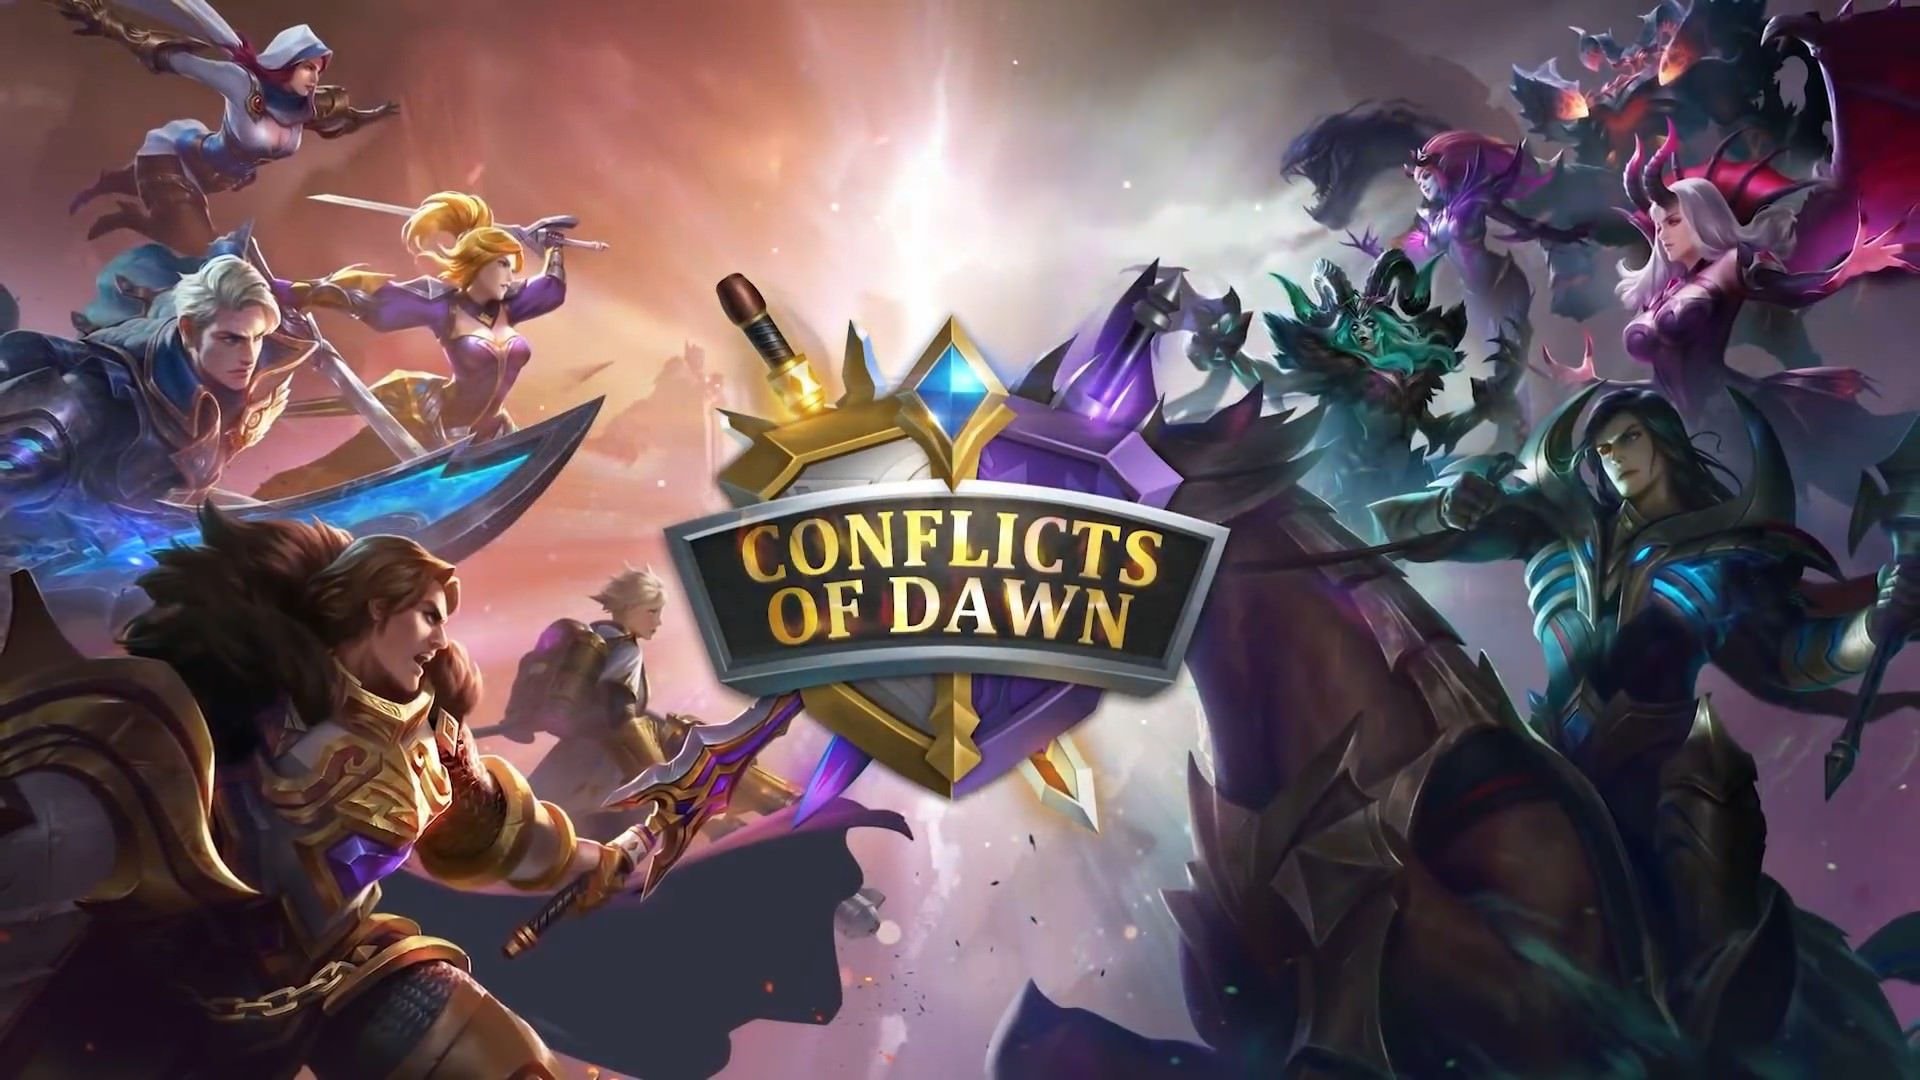 Conflicts of Dawn Event | Gaming | Mobile legends, The legend of